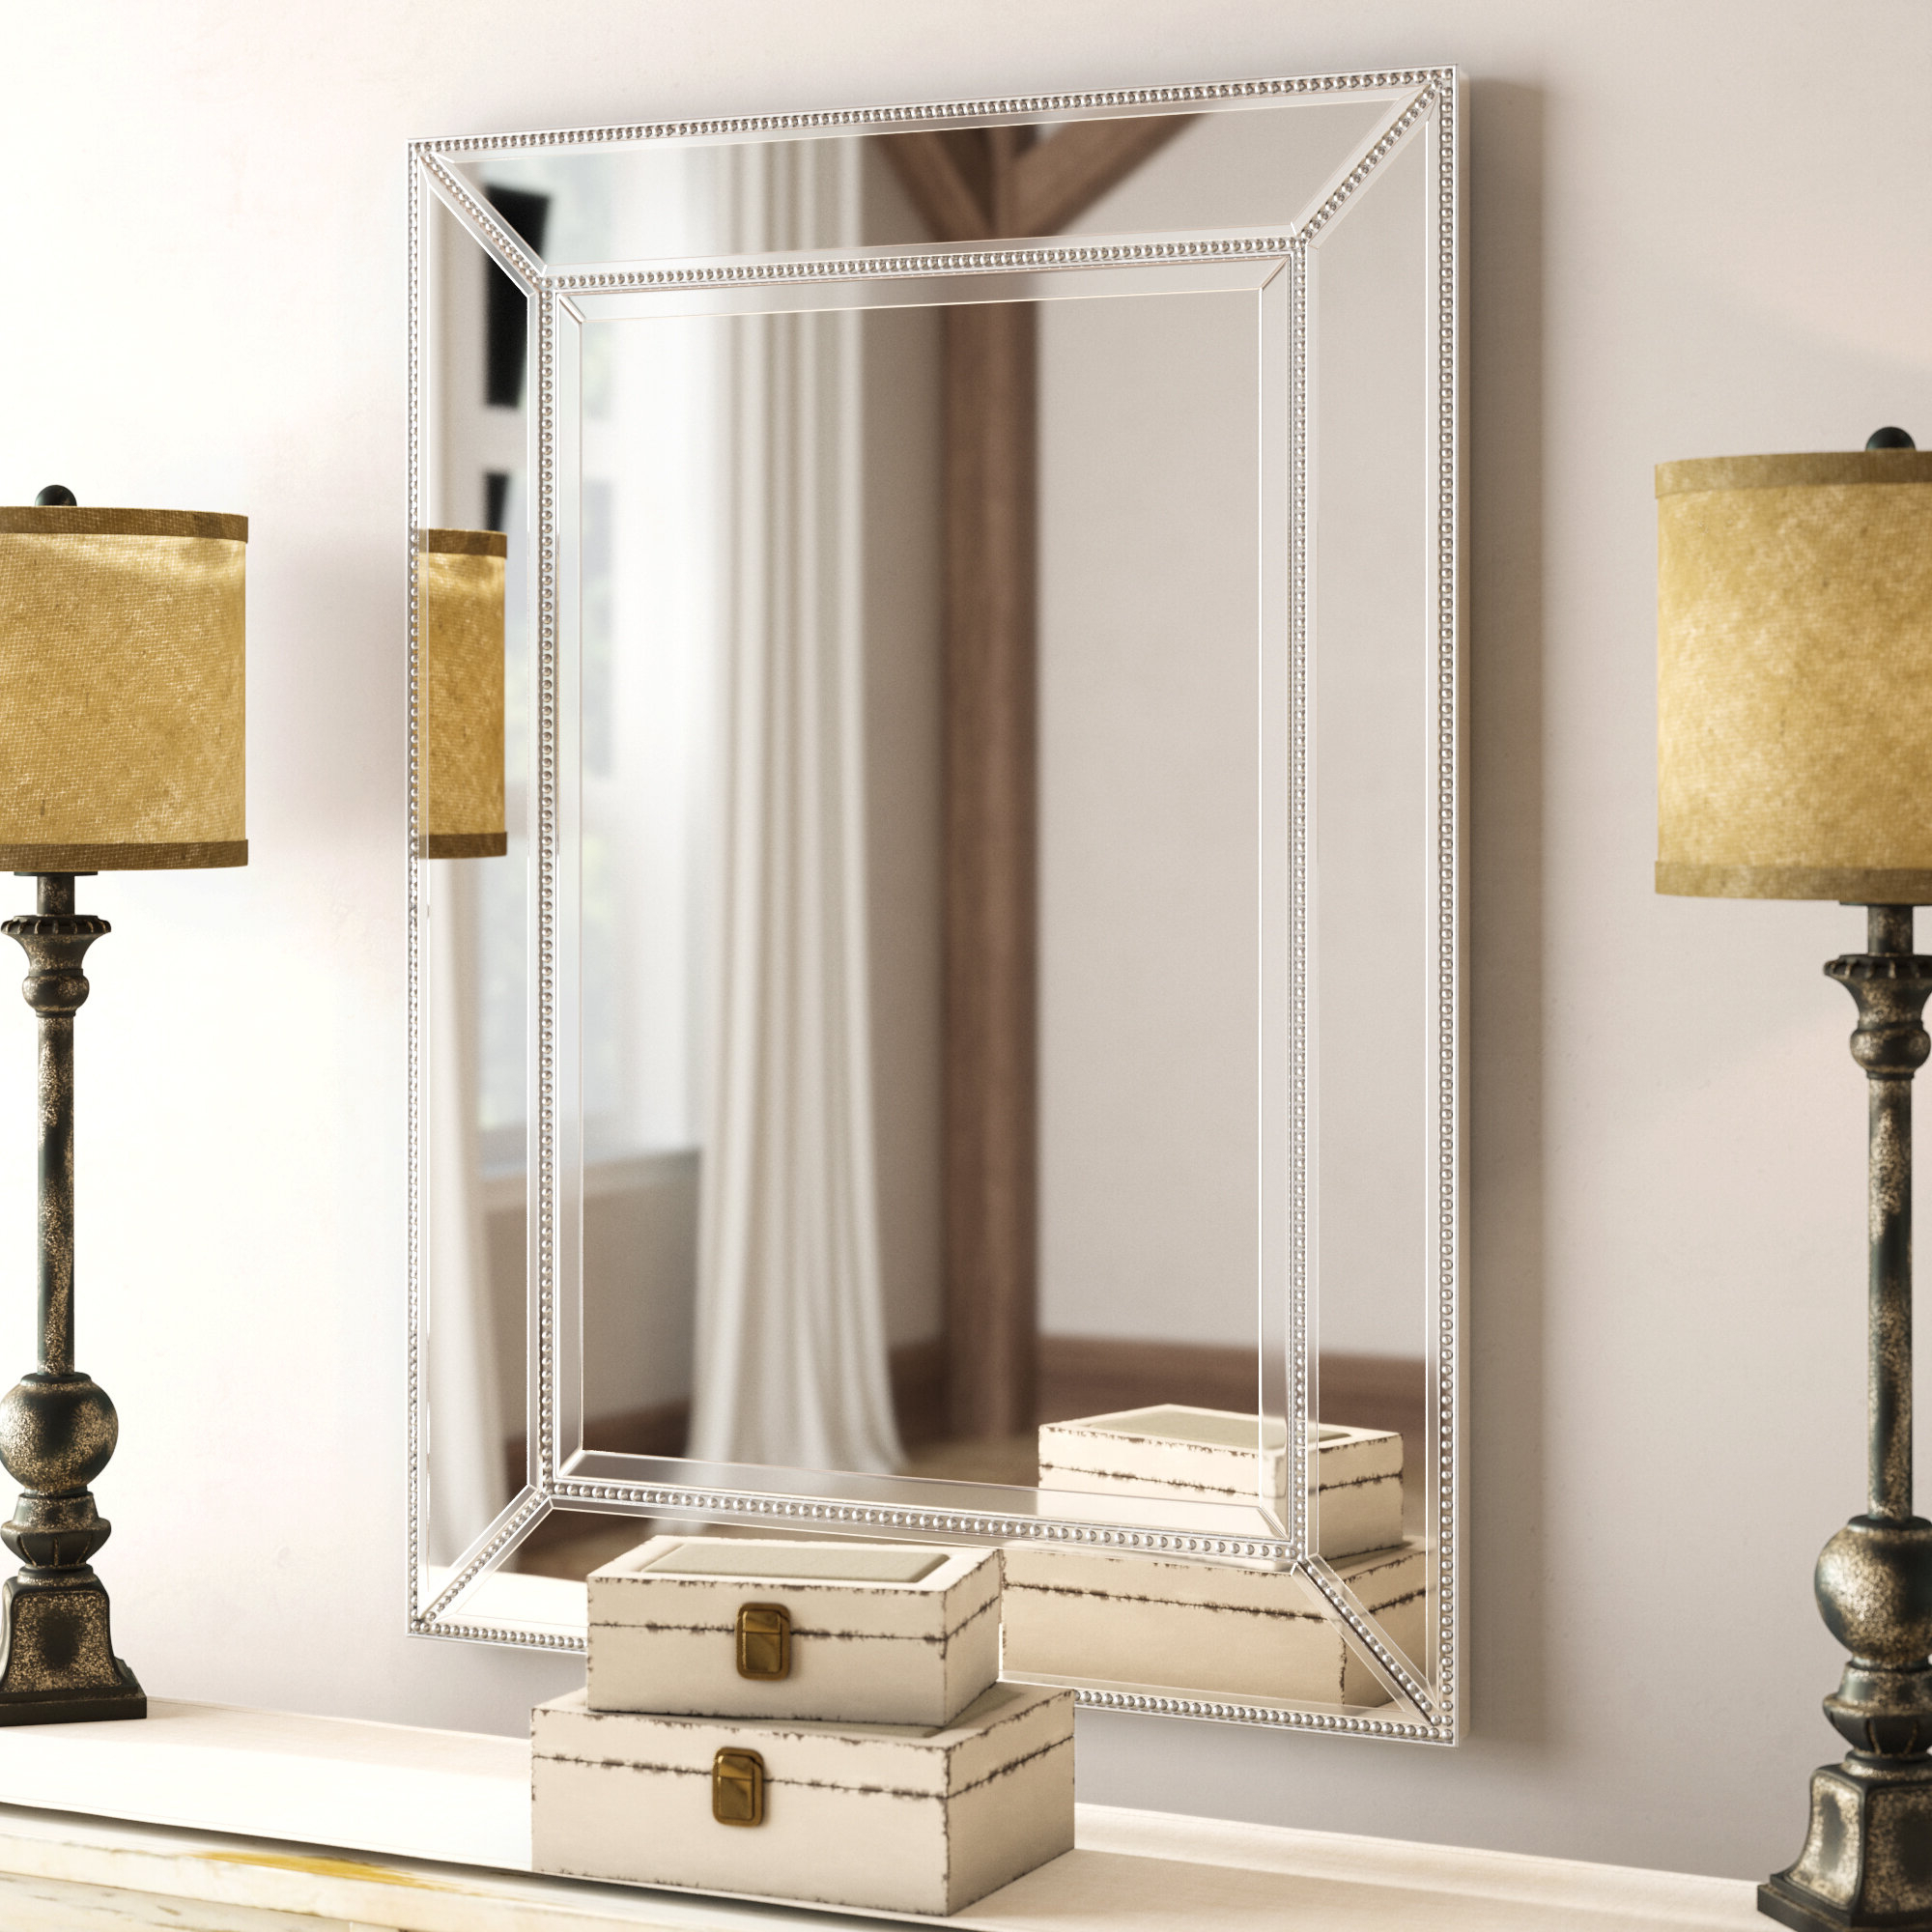 Brayden Beaded Accent Wall Mirror Within Popular Beaded Accent Wall Mirrors (View 8 of 20)